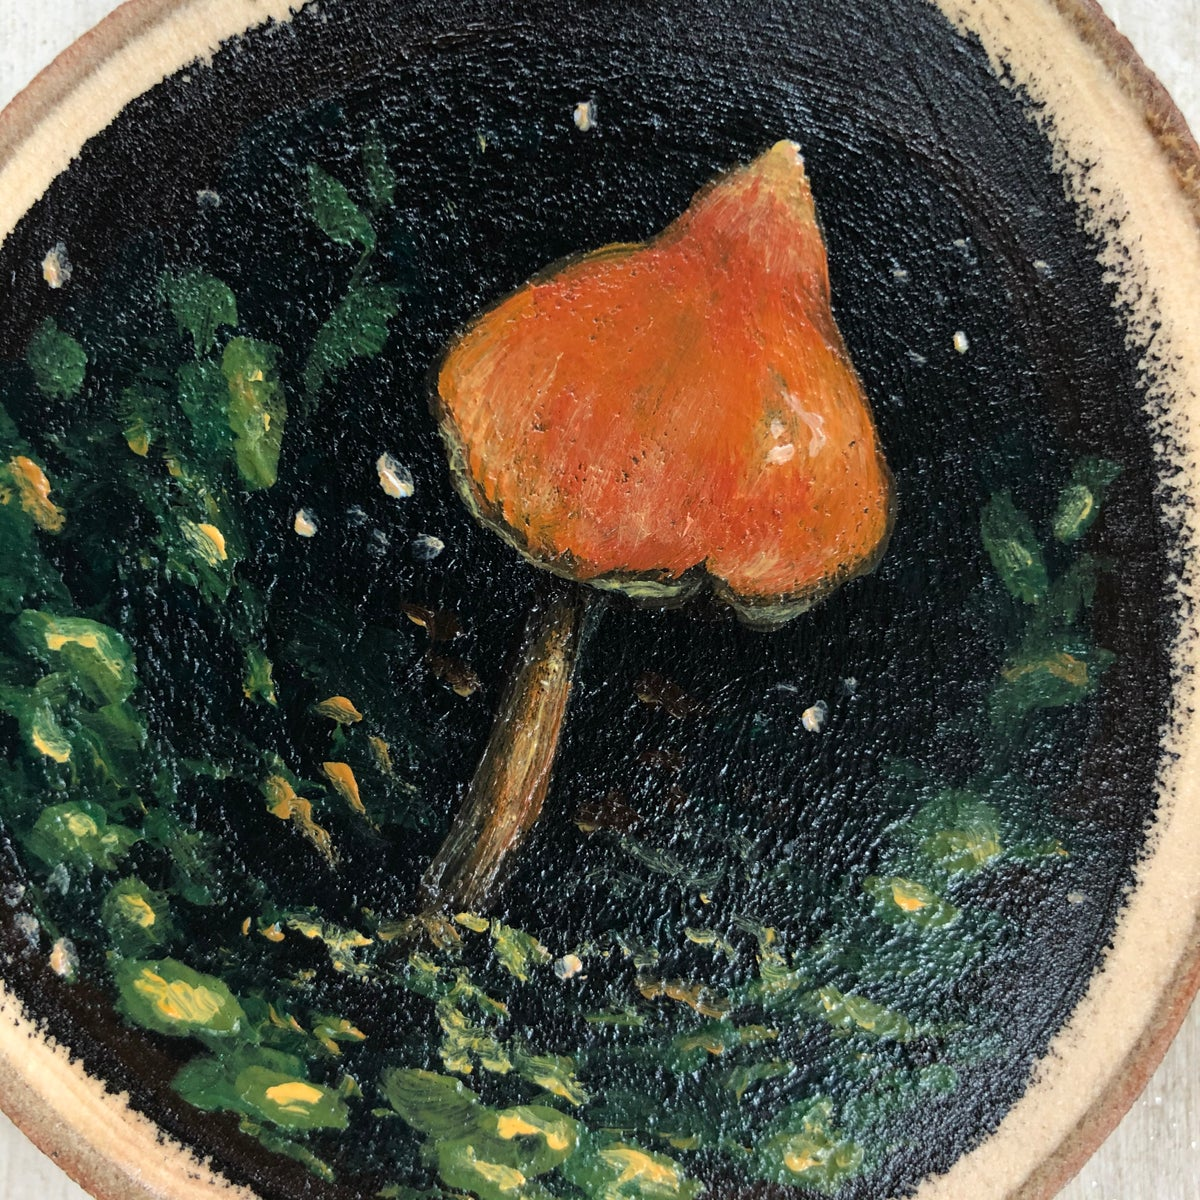 Salmon-colored Nolanea| Orignal Wood Slice Painting